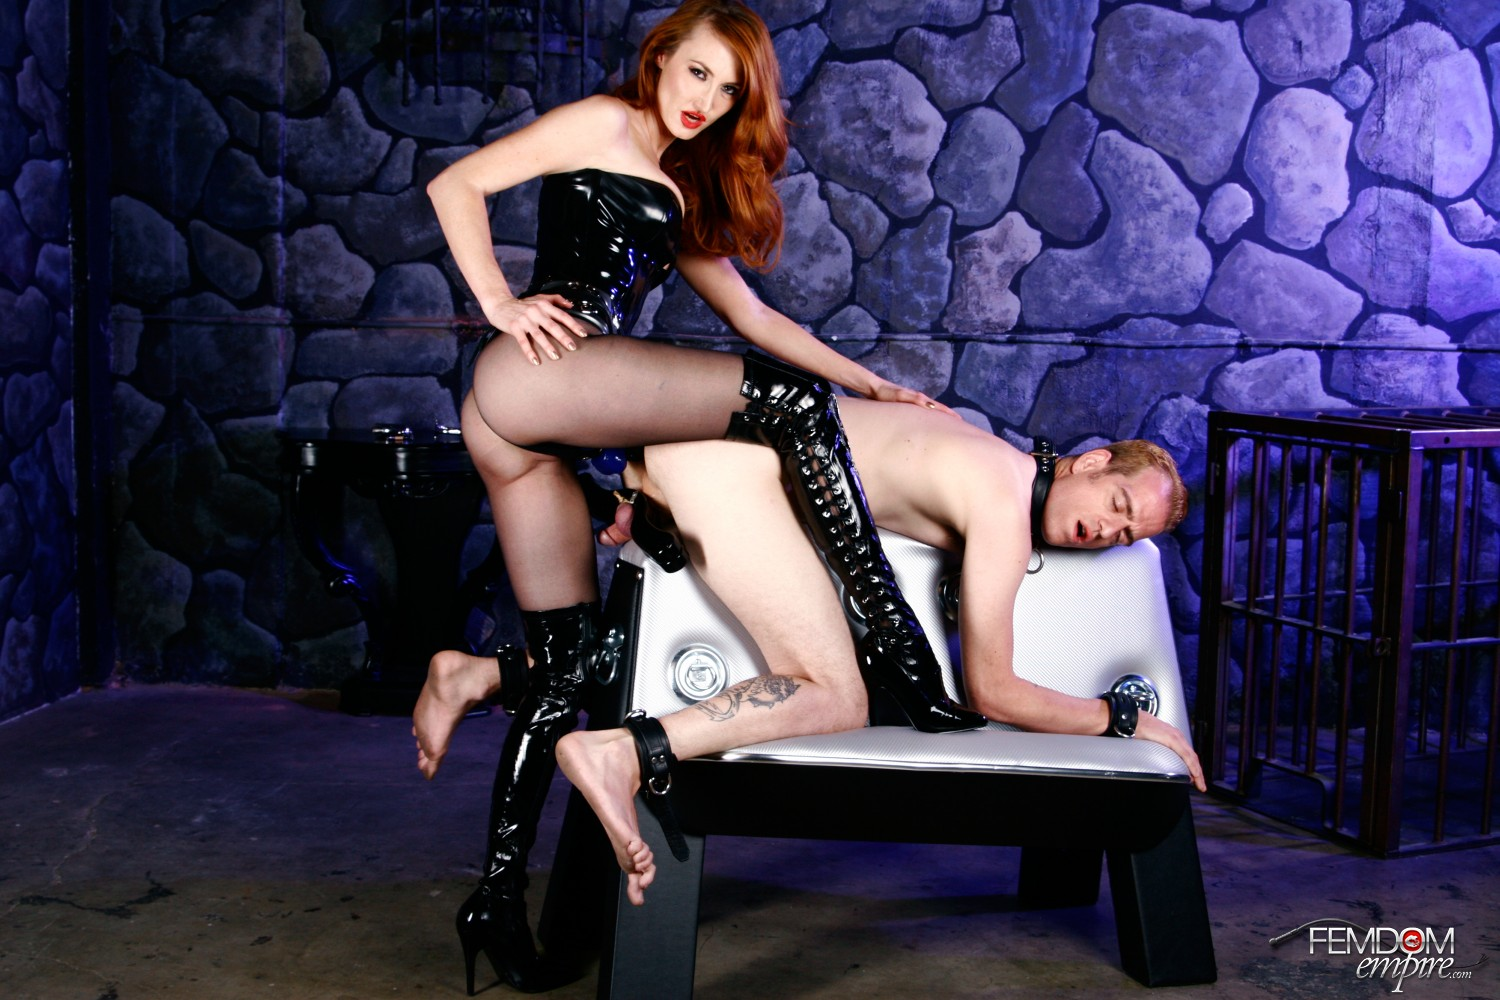 Dominatrix Kendra James screws her humbled biotch into subordination with her strap-on guy sausage.